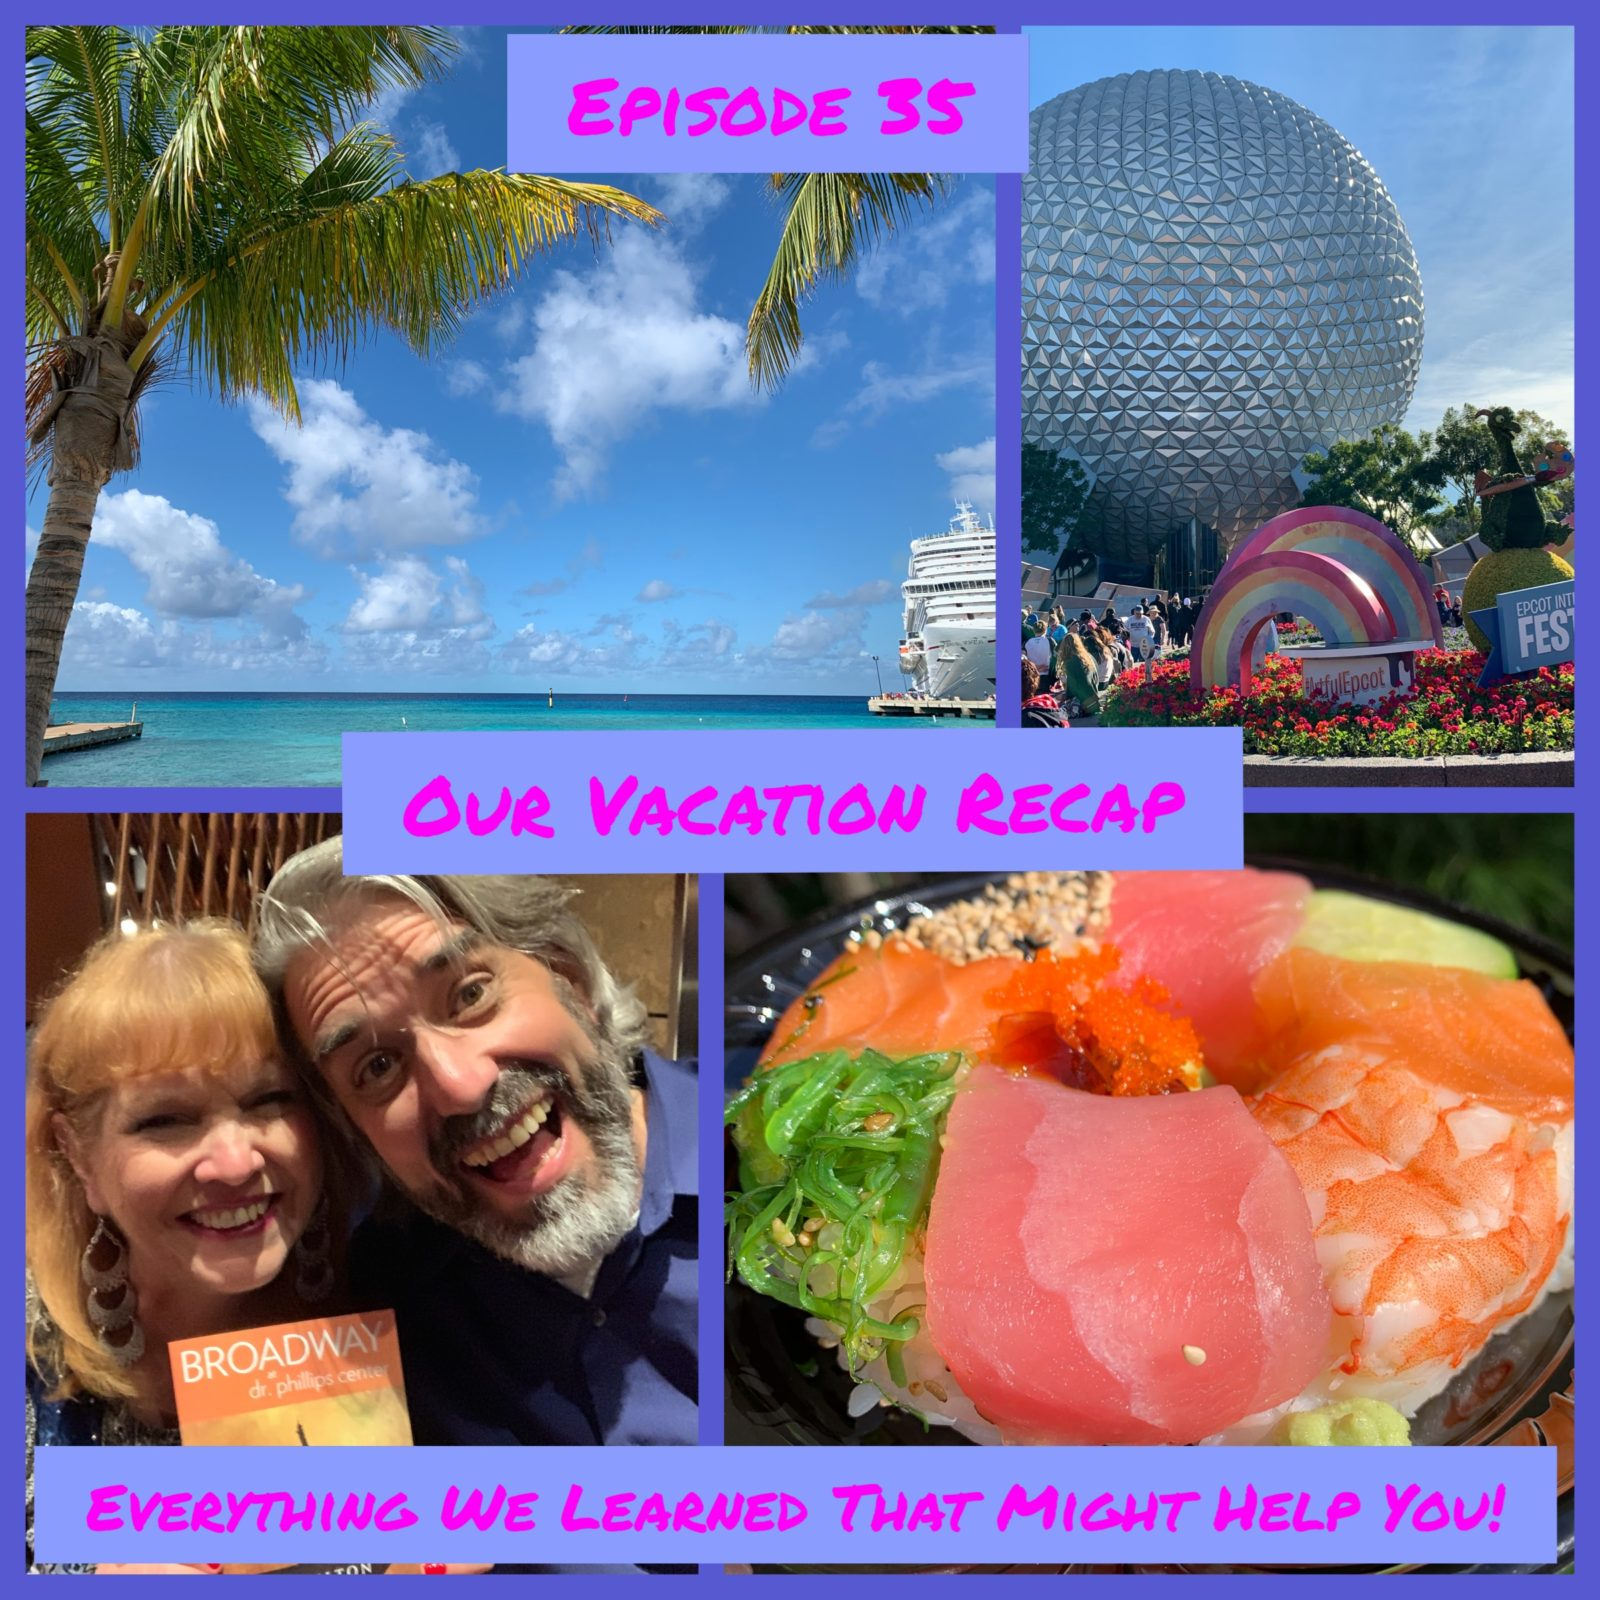 Episode 35 - Our Vacation - What We Learned That Might Help You